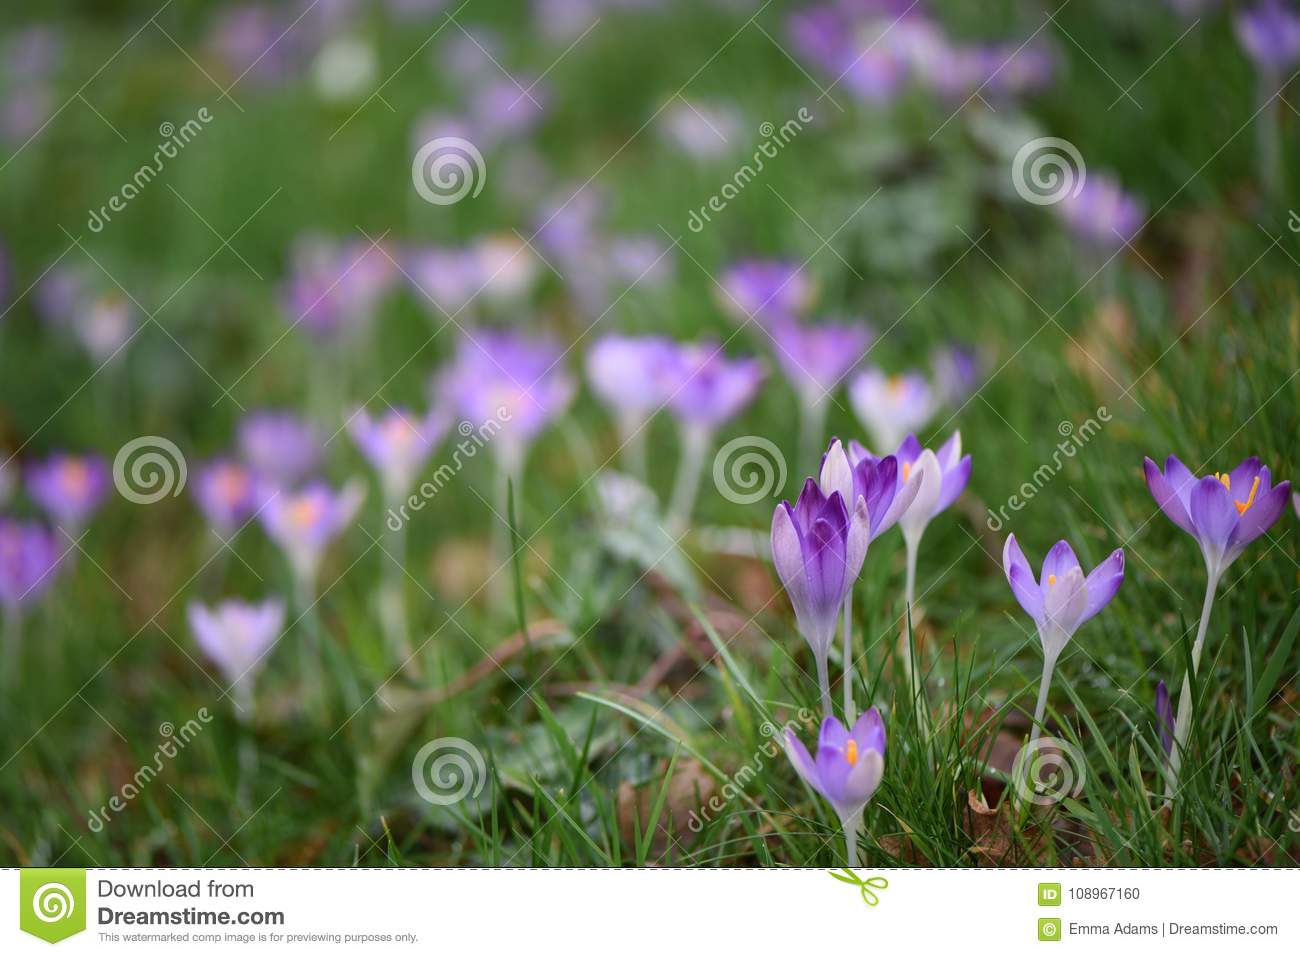 Beautiful Spring Time Pink Purple Crocus Flowers With Orange Pollen